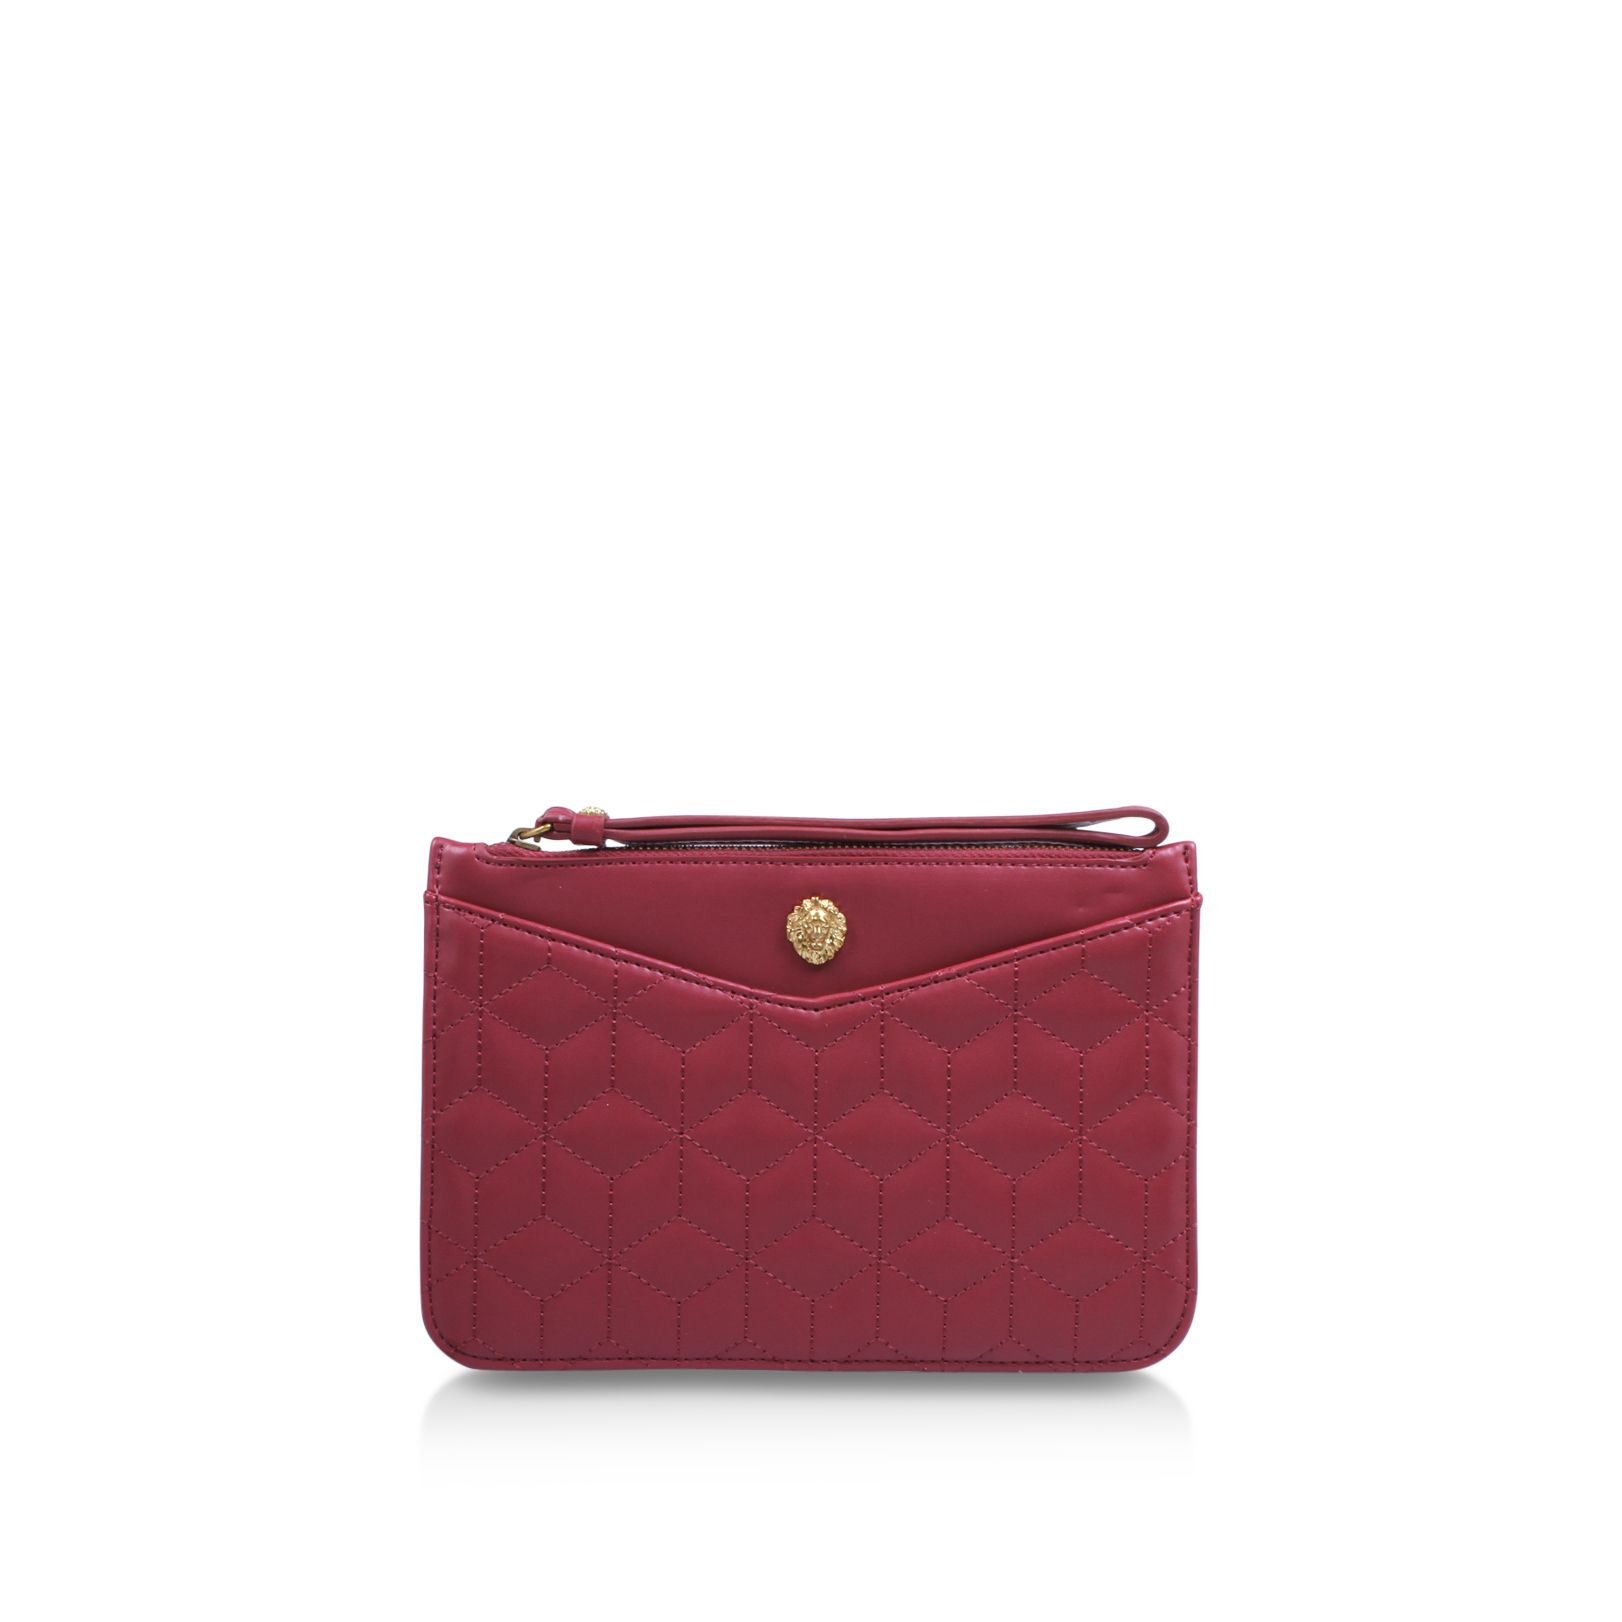 Anne Klein Frances Md Wristlet, Wine